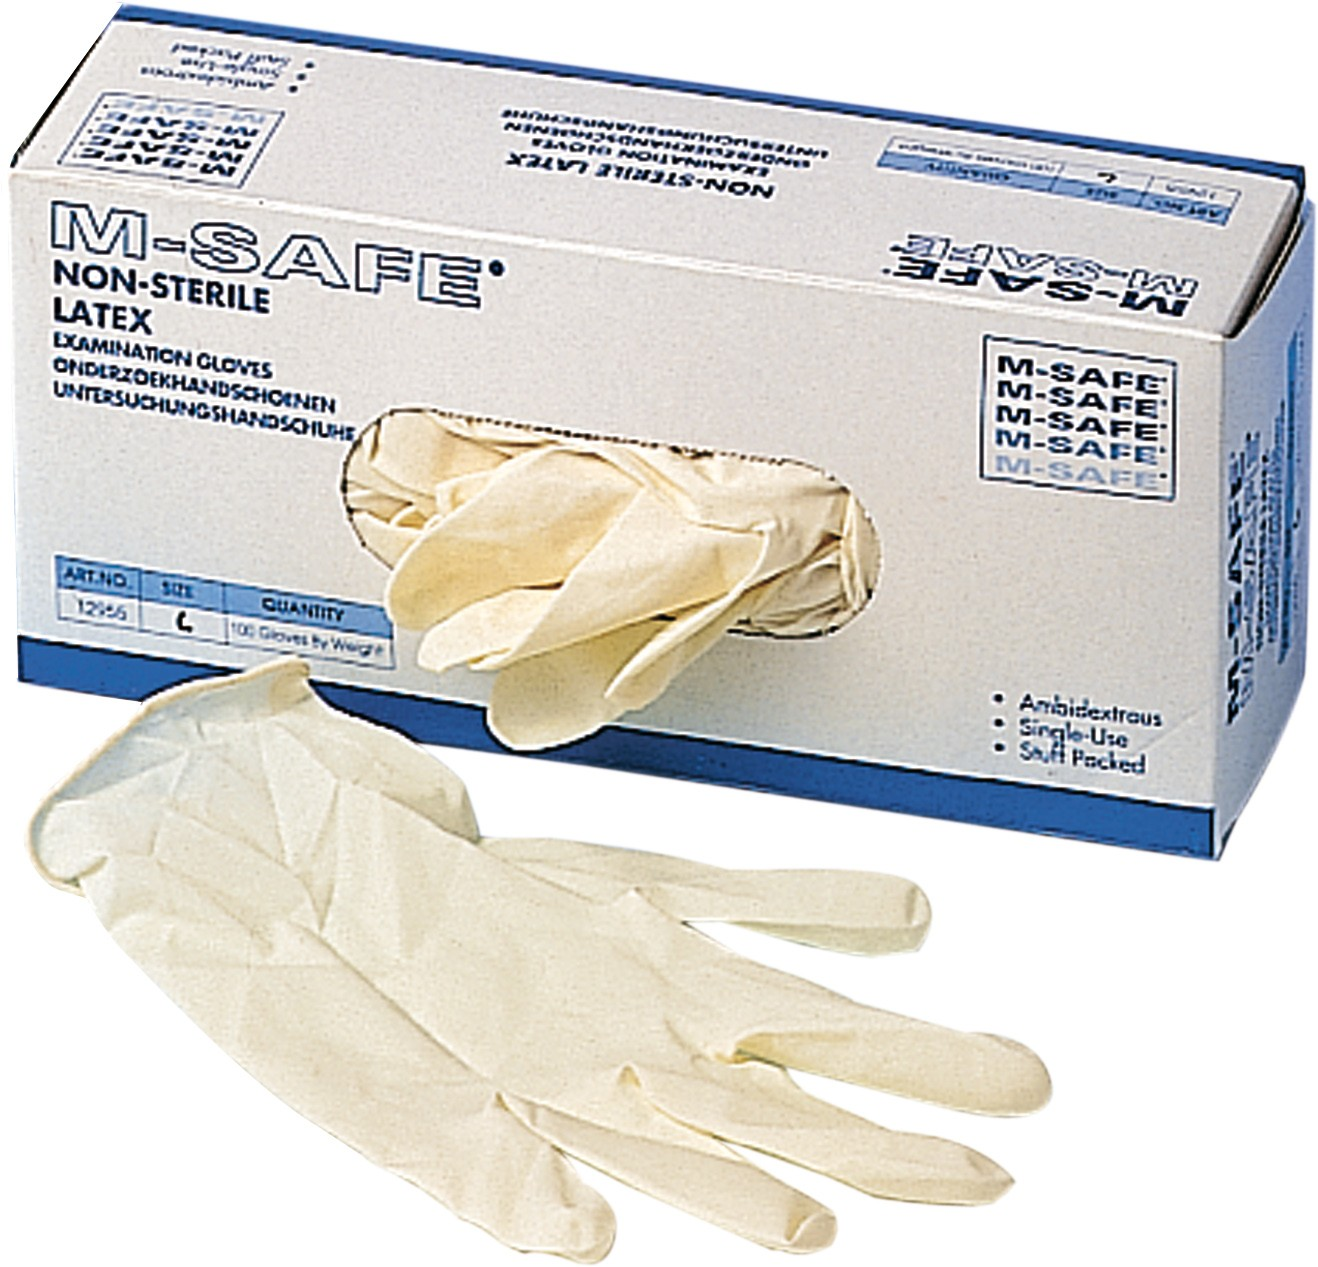 Majestic M-safe latex naturel